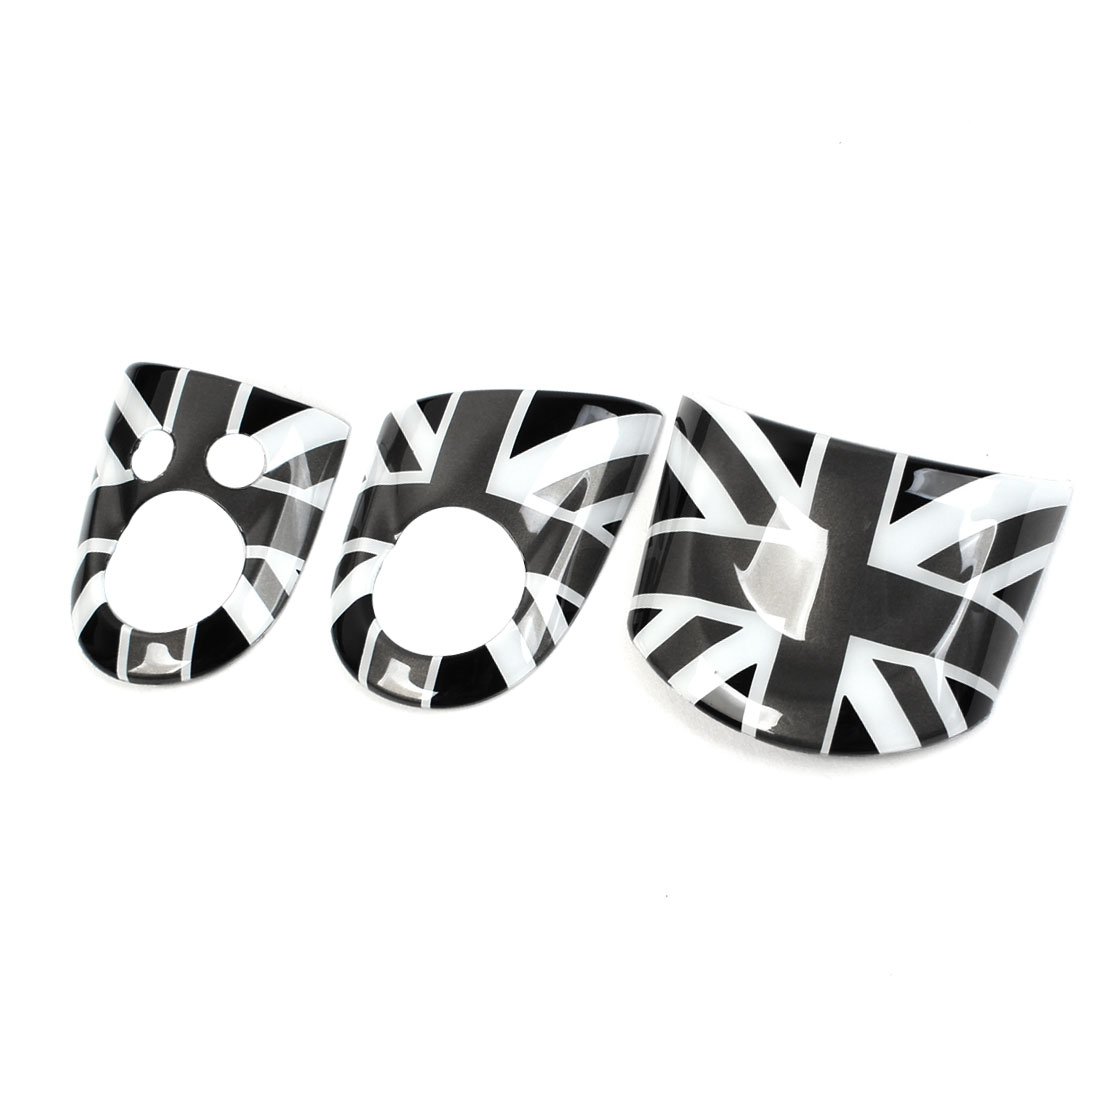 3 Pcs Black White Union Jack Flag Pattern Steering Wheel Cover Sticker for MINI COOPER